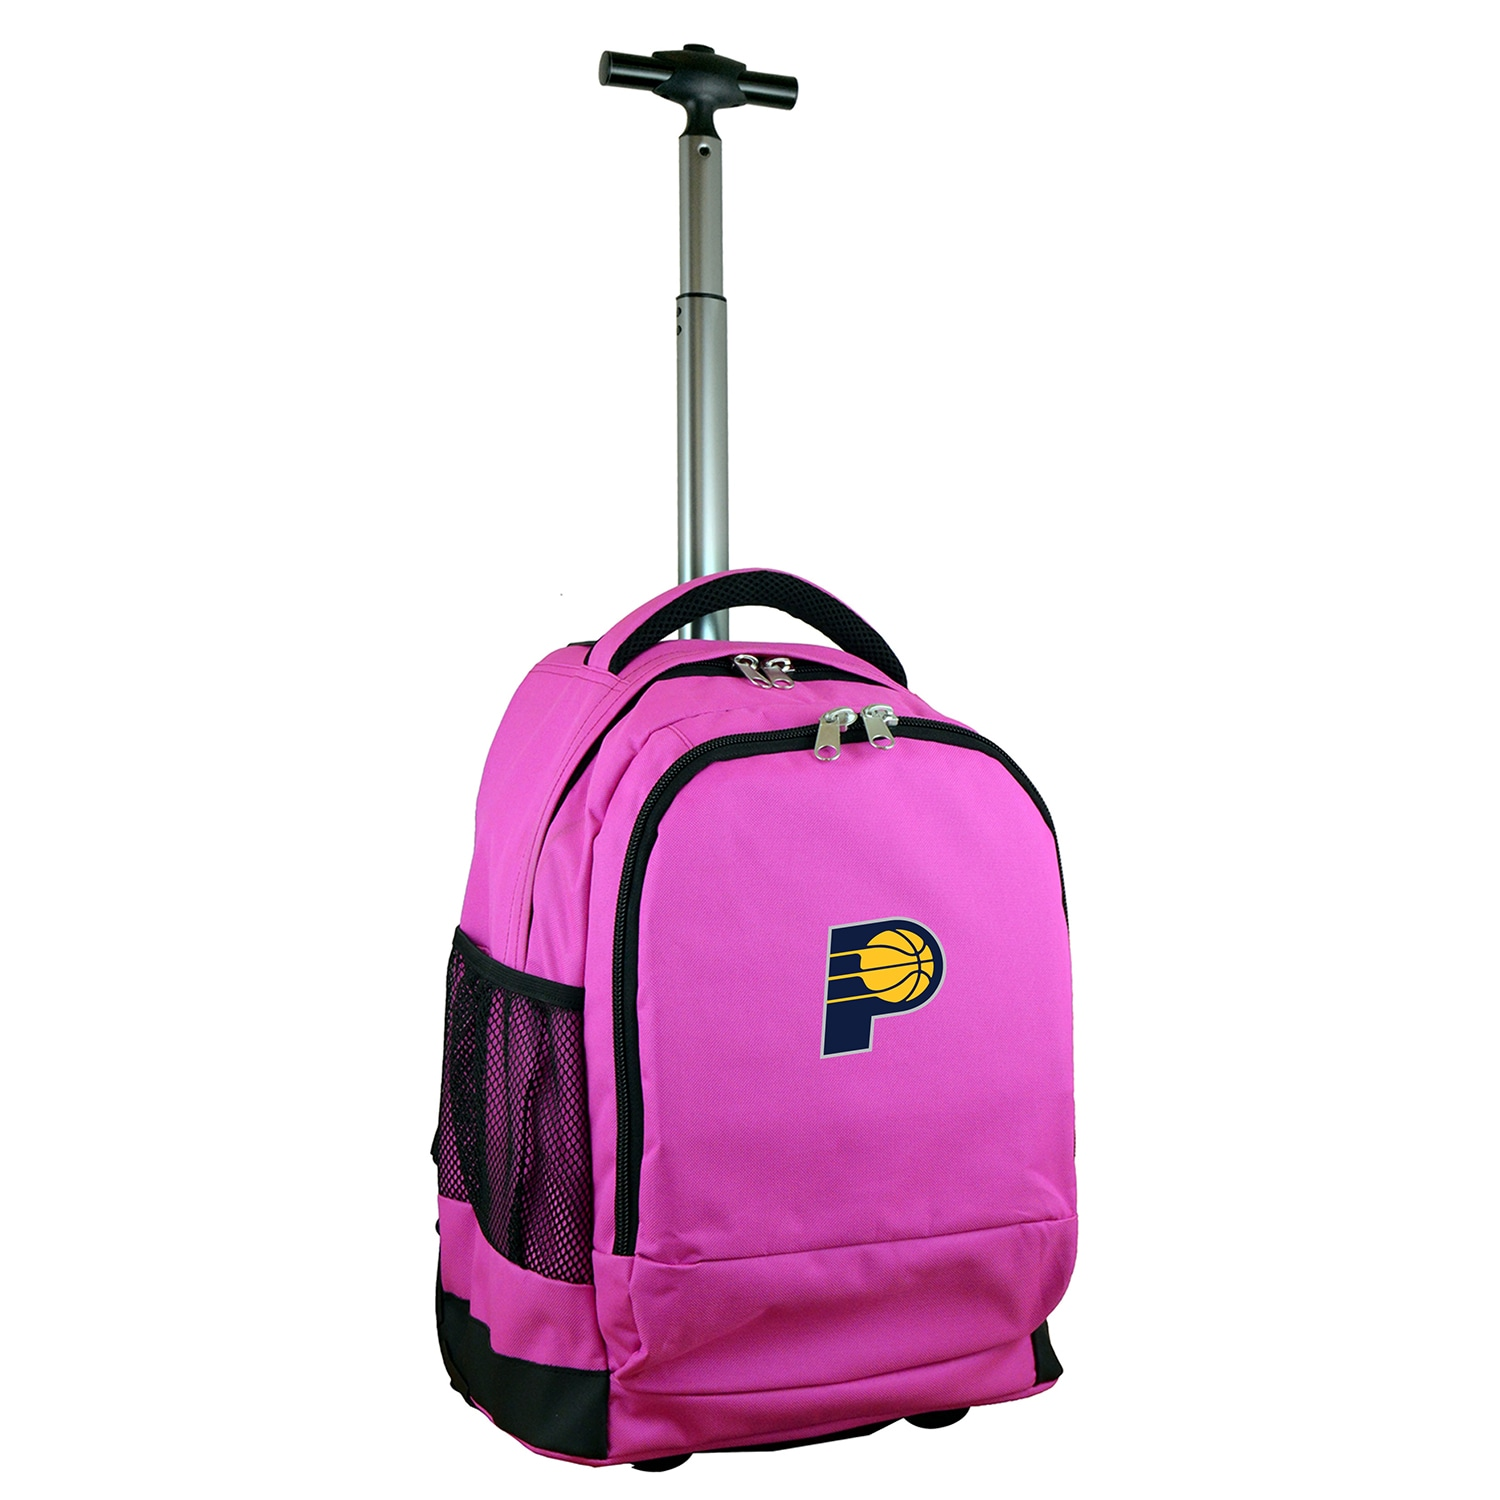 Indiana Pacers 19'' Premium Wheeled Backpack - Pink